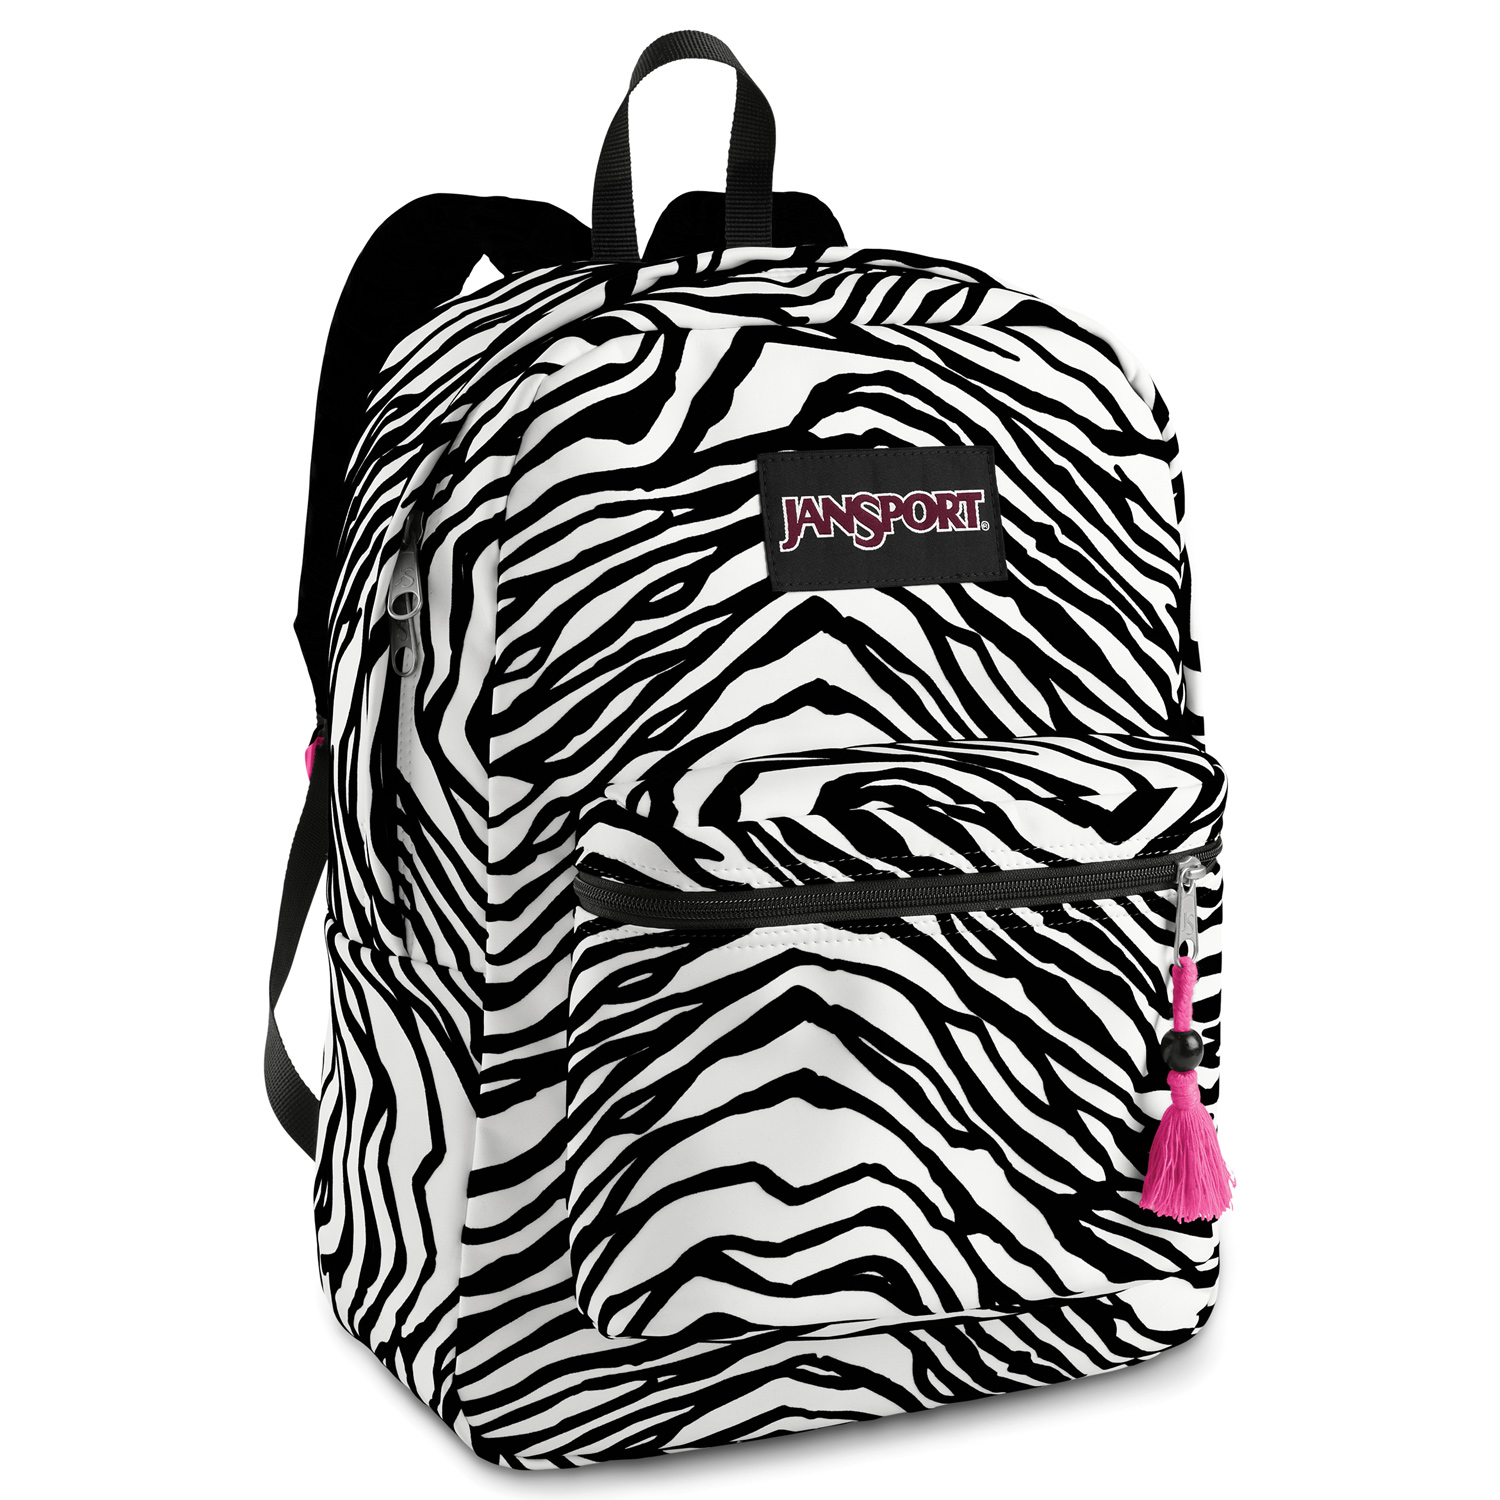 Jansport Zebra Backpack cECp0xwr